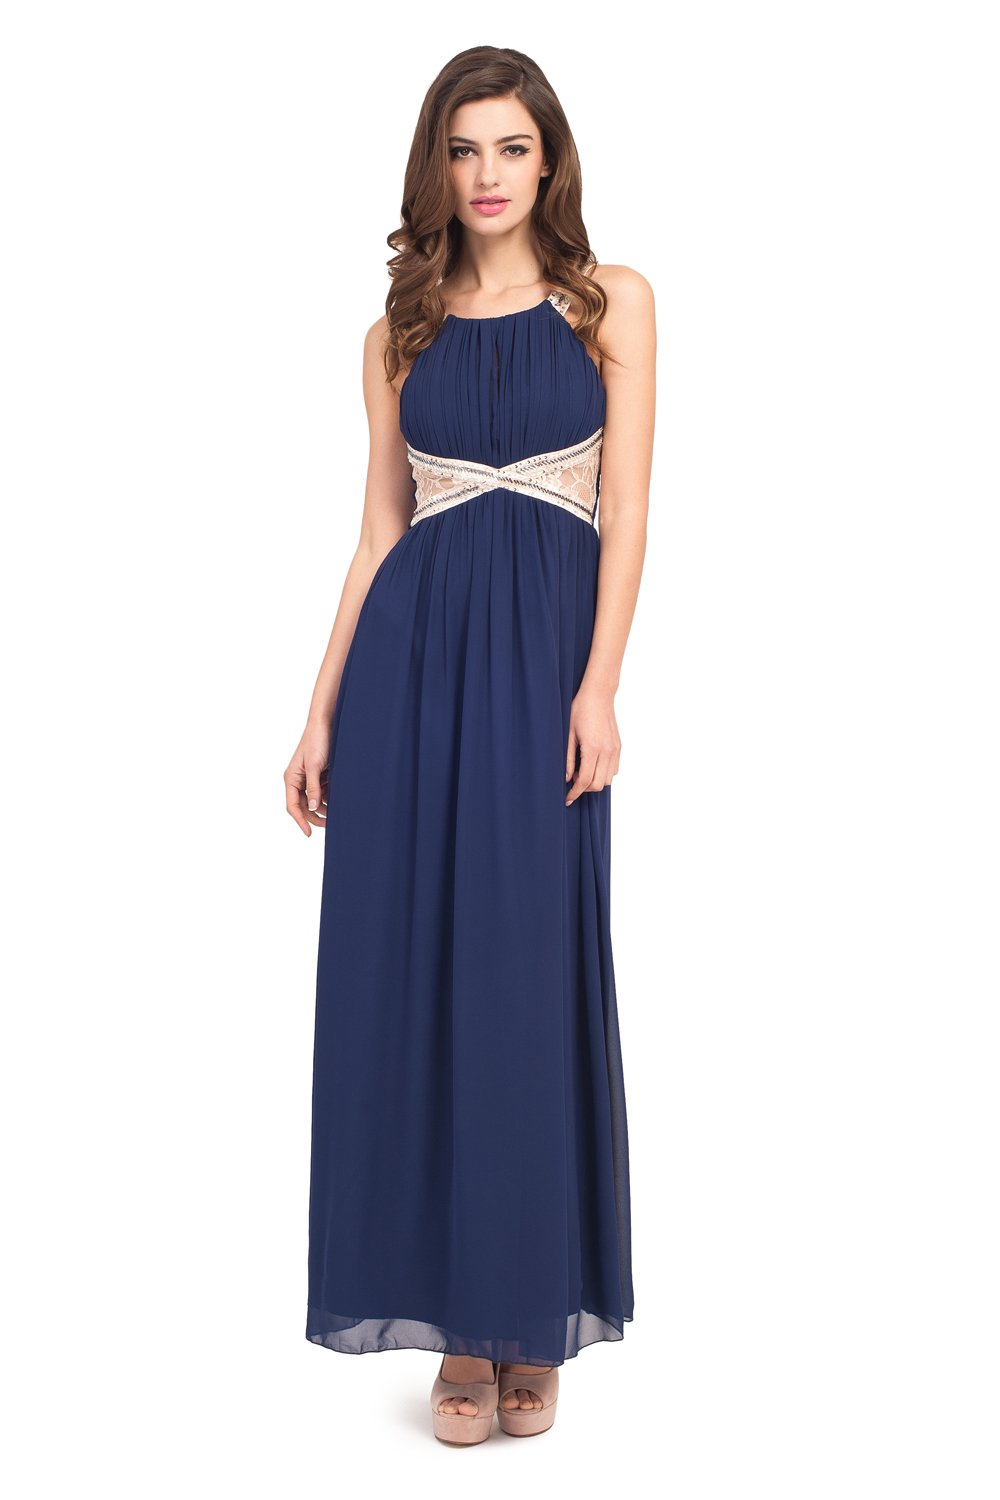 Navy Maxi Dress  DressedUpGirlcom